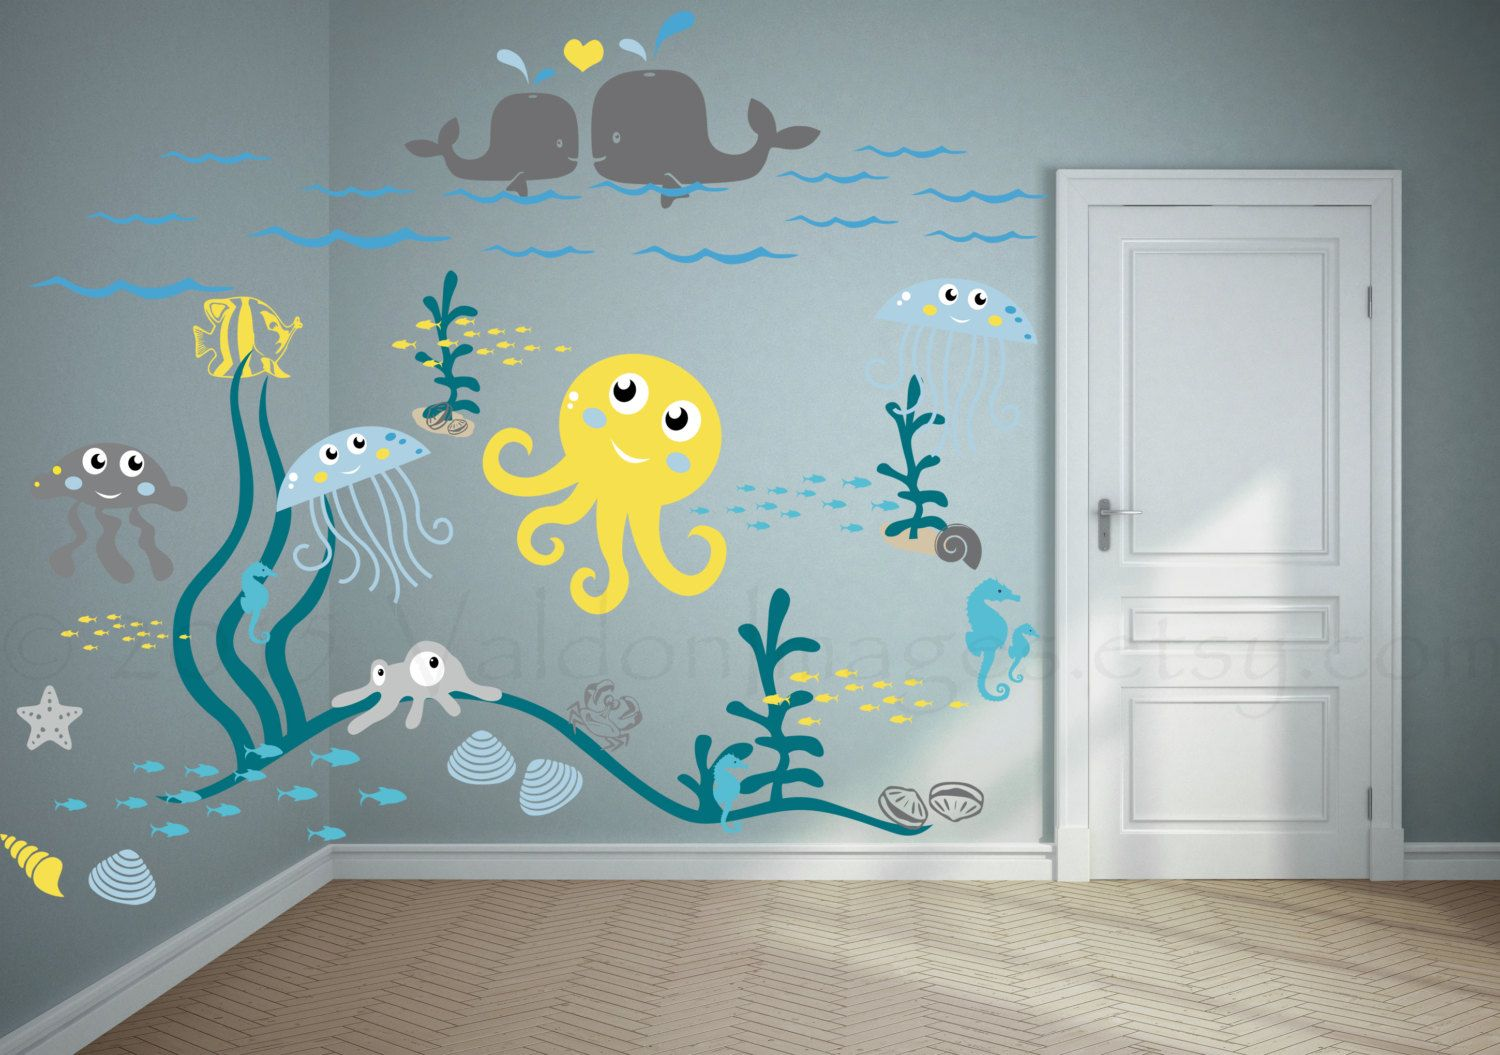 Jellyfish adventure wall decal nursery wall decal kids decor jellyfish adventure nursery wall decal ocean wall decal sea wall decal nautical wall amipublicfo Gallery